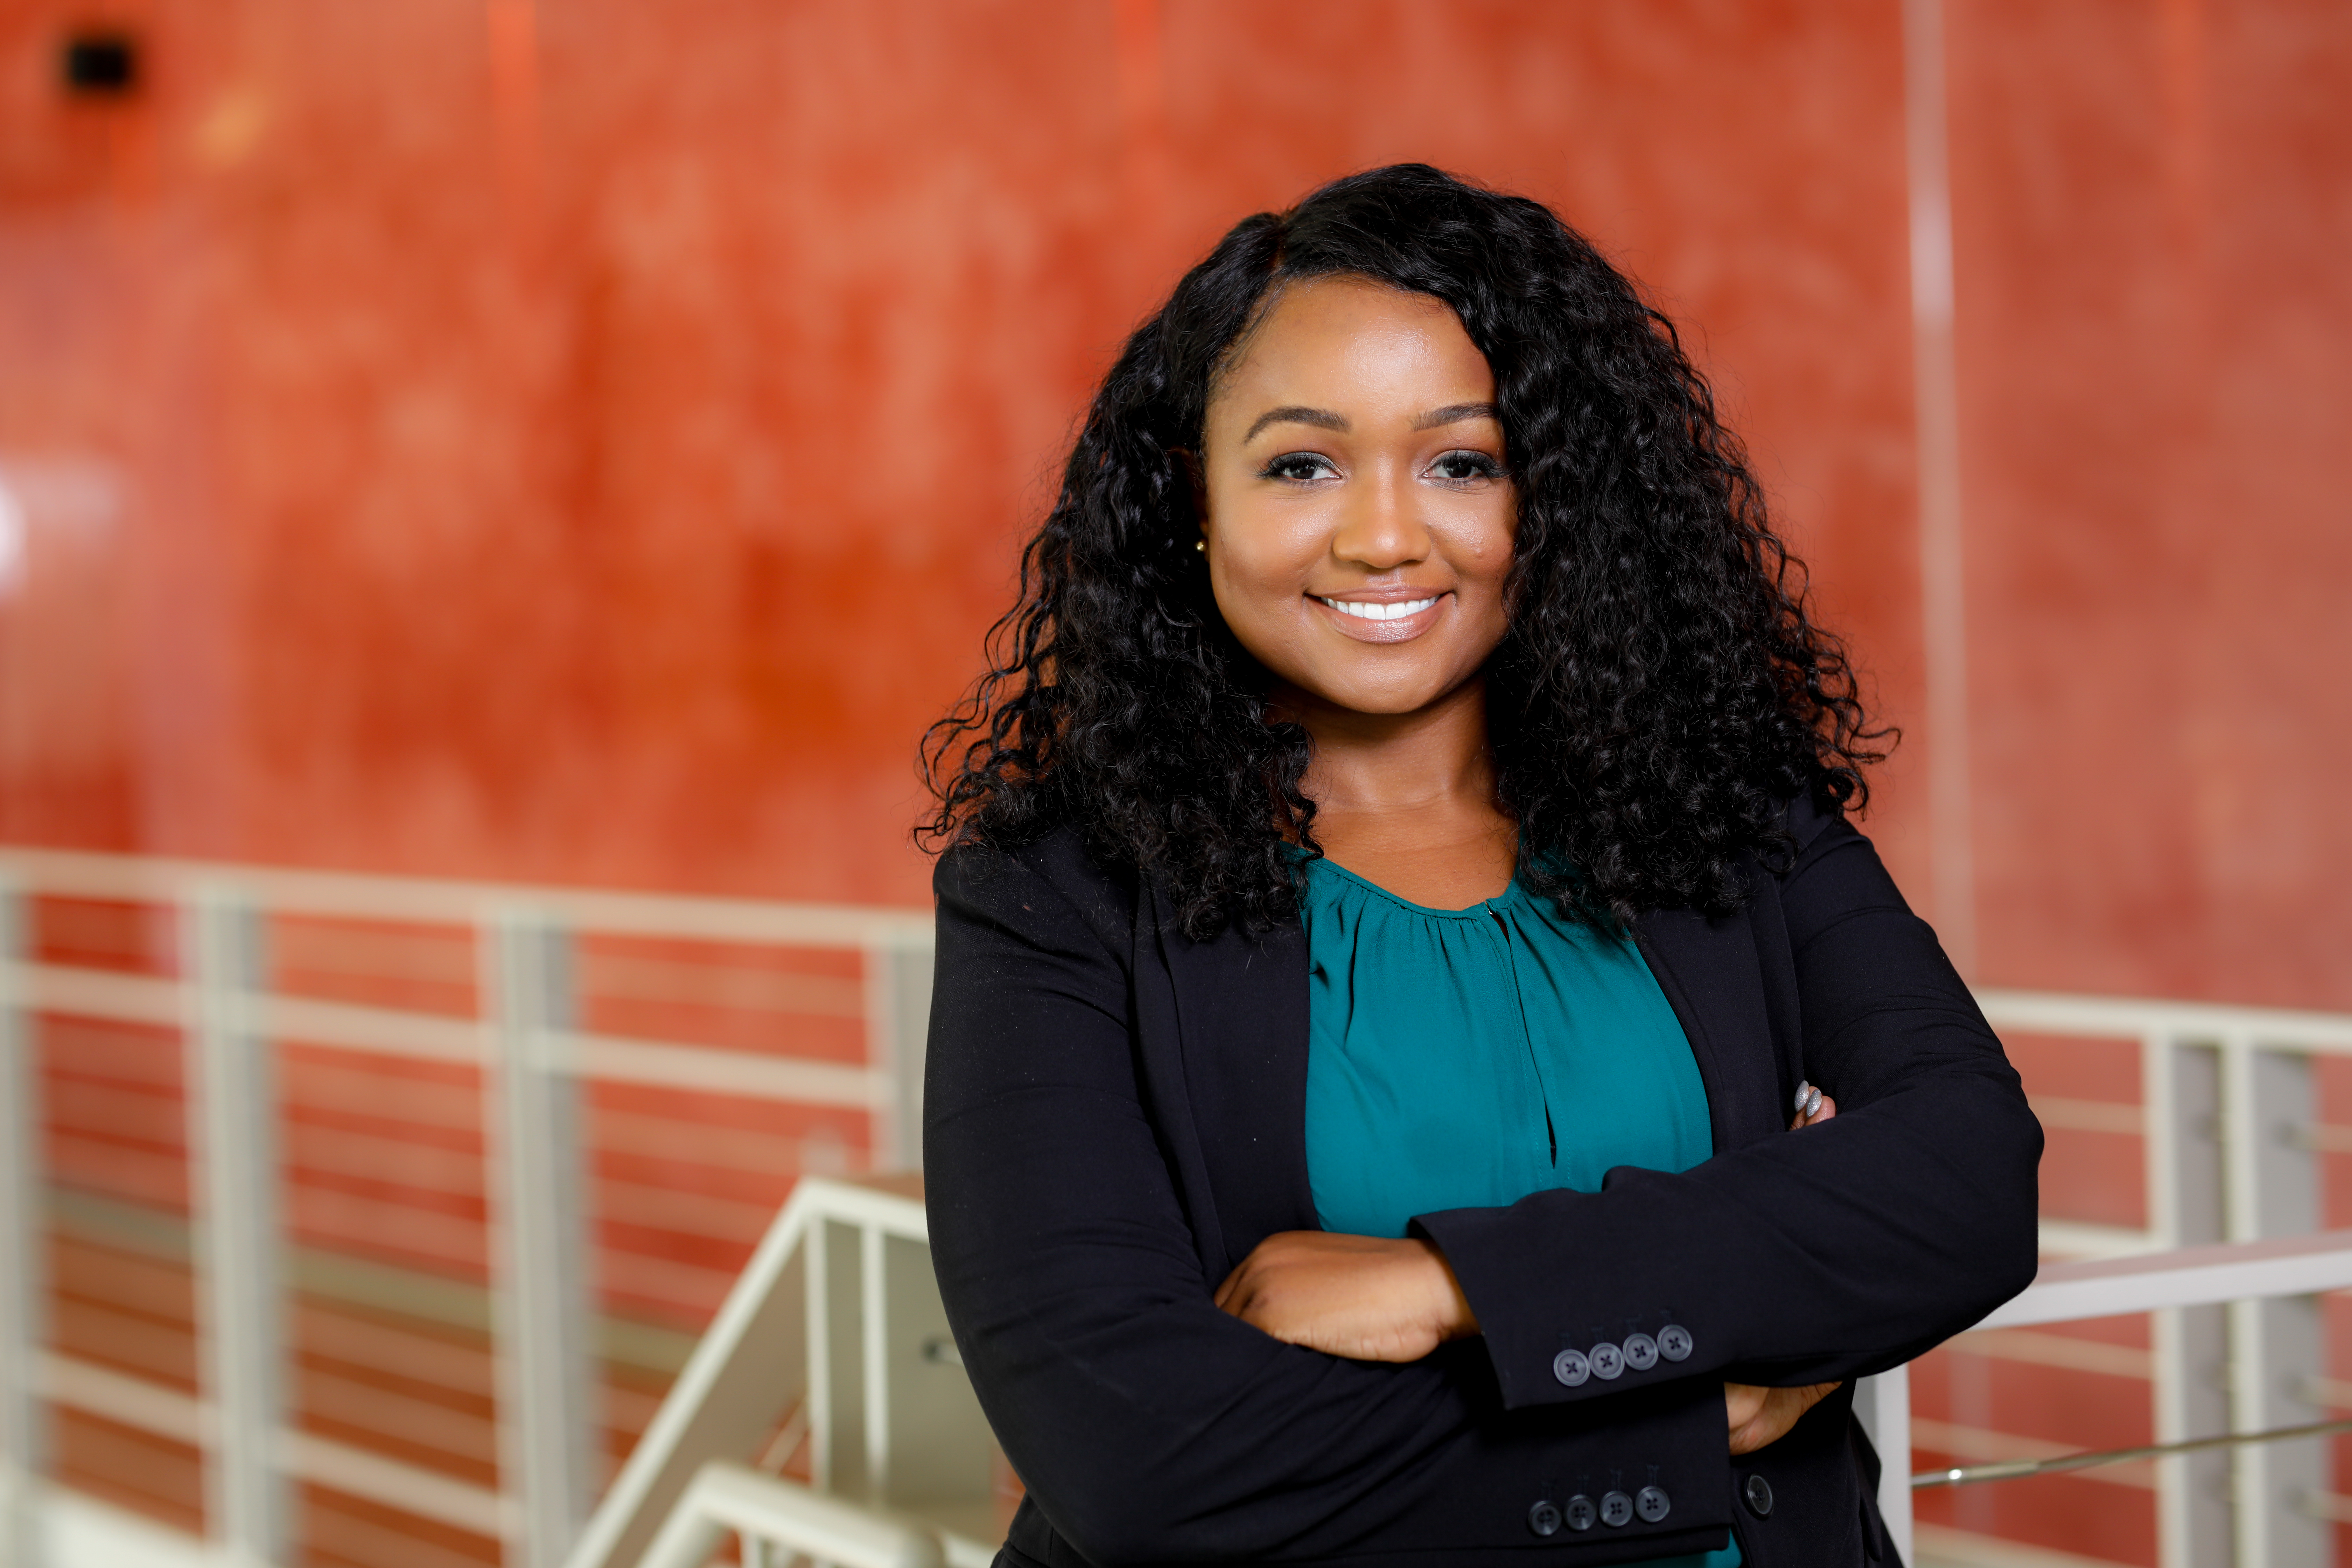 Janelle Manuel, UT Dallas MBA'17, MS'17